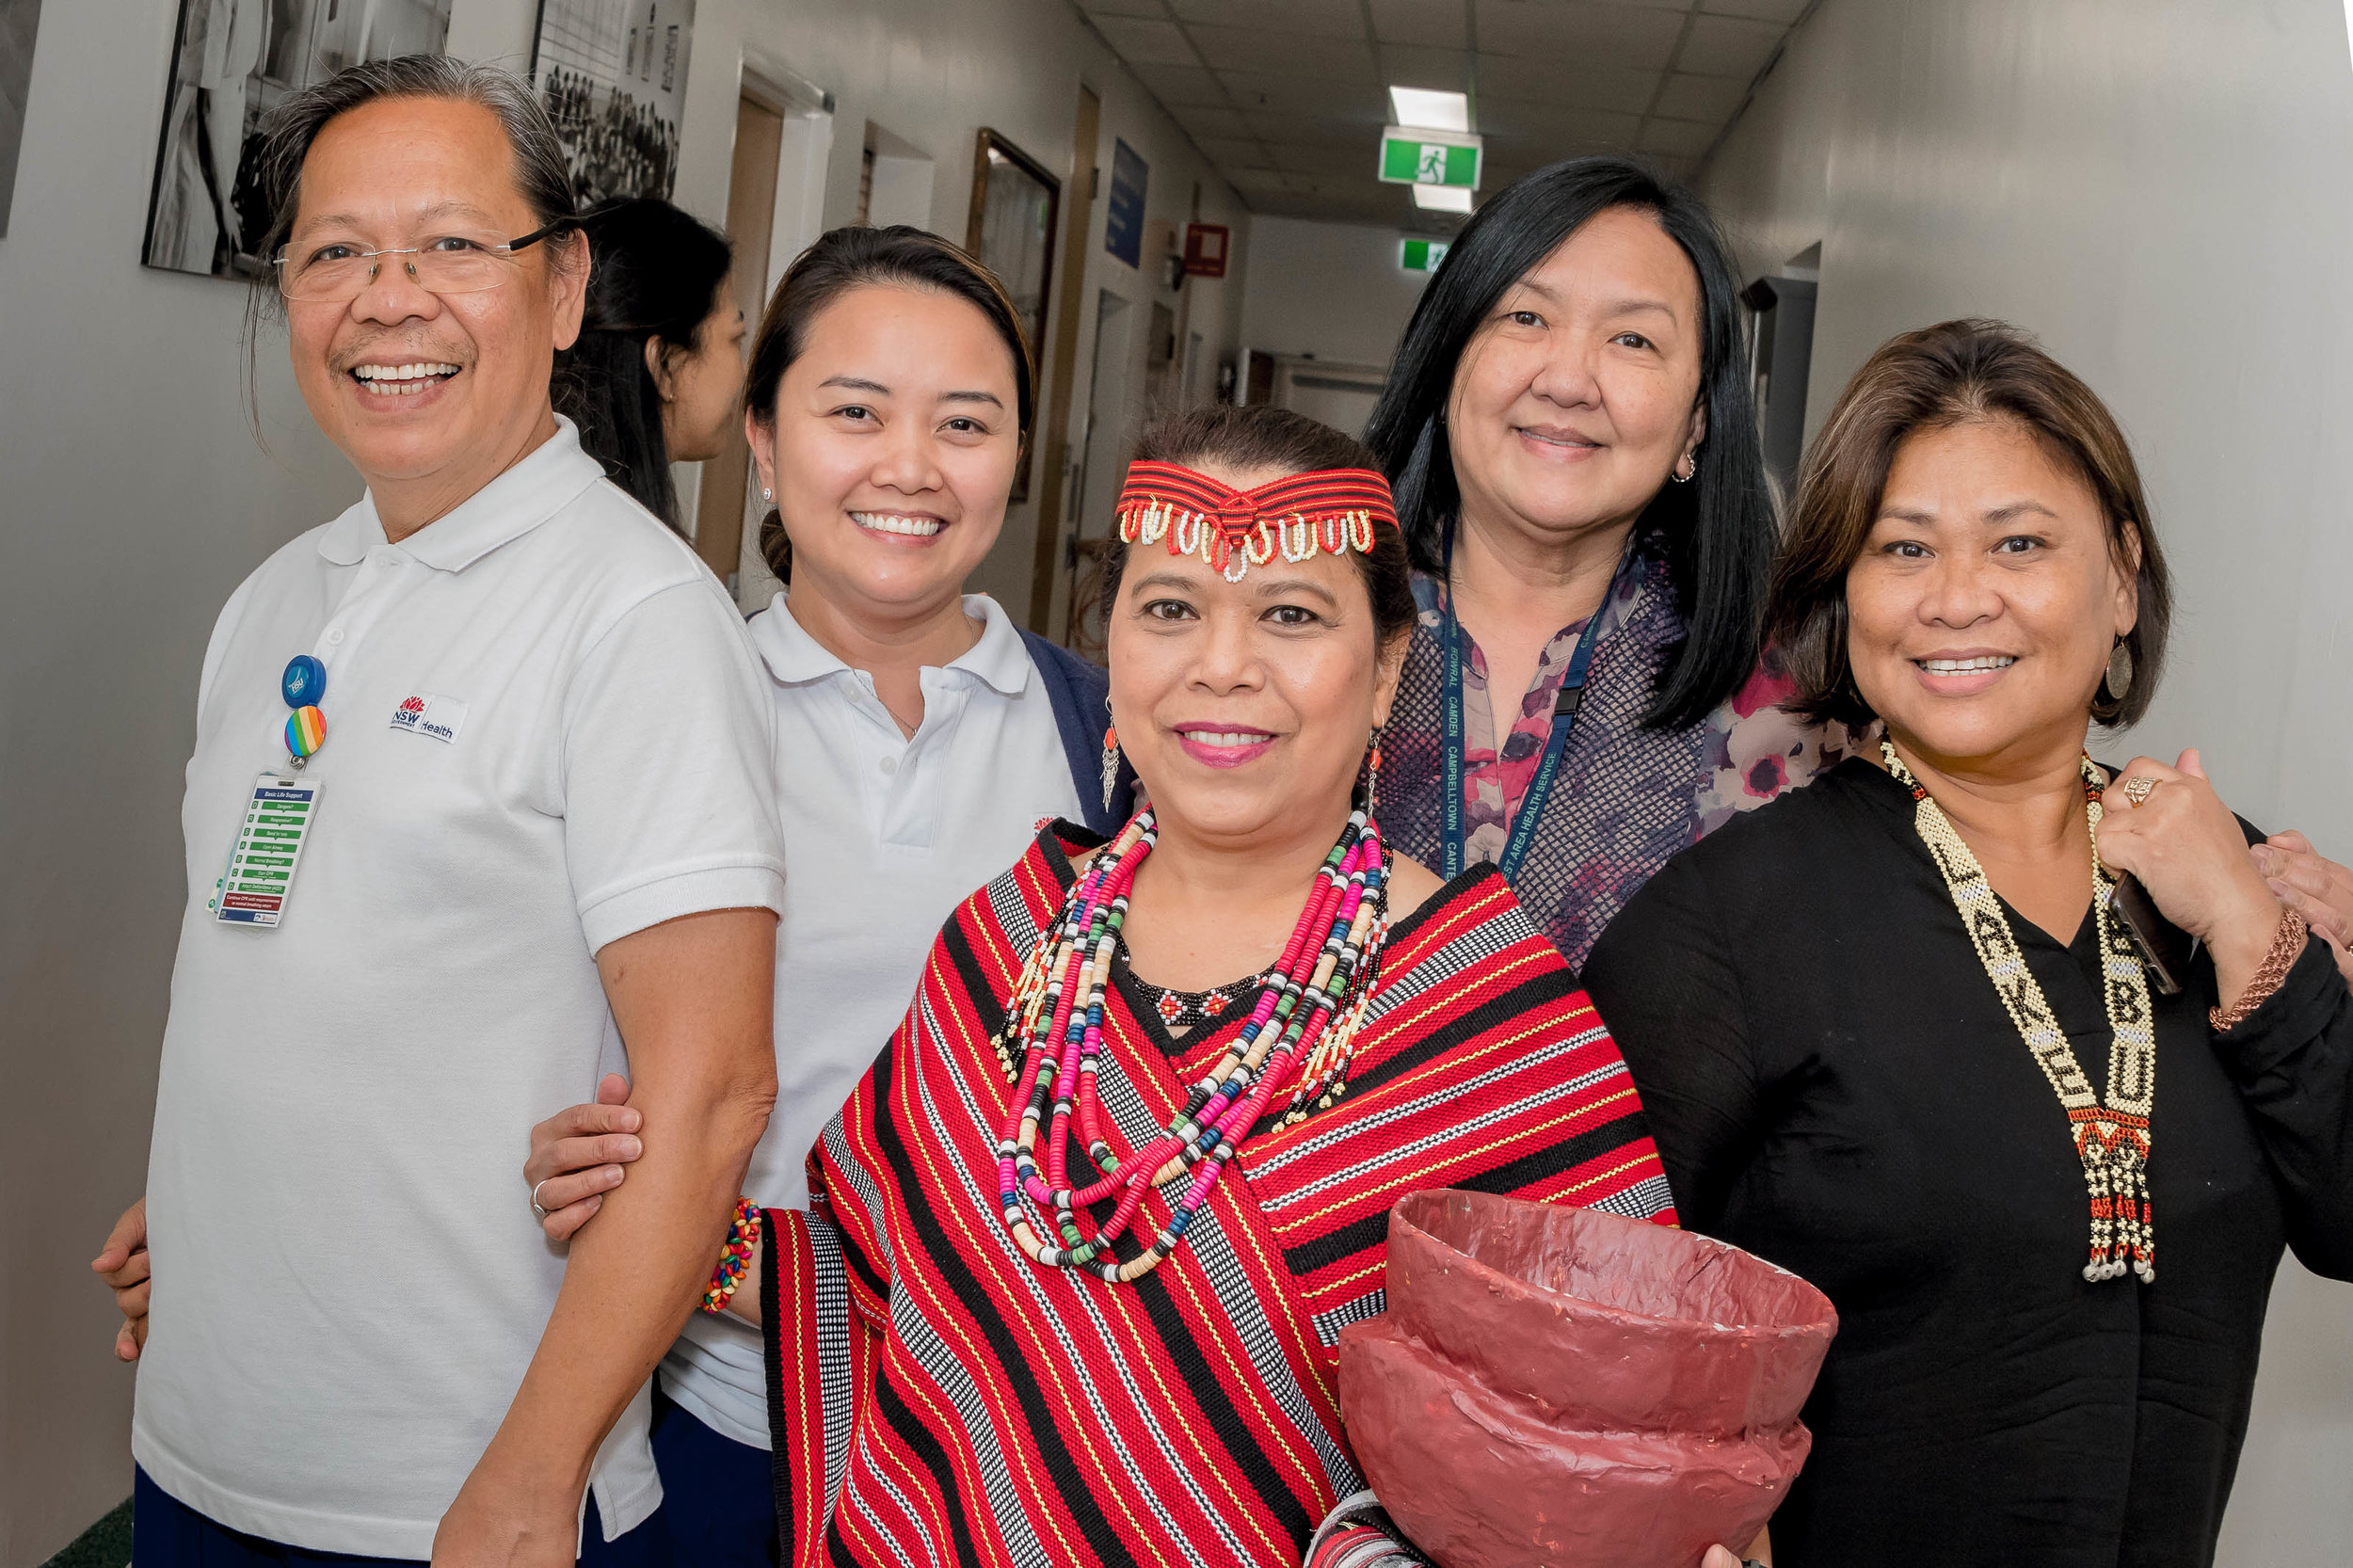 86365 March Arts Sydney Dental Hosp Colour Competition 20190326 WS2-231811.jpg